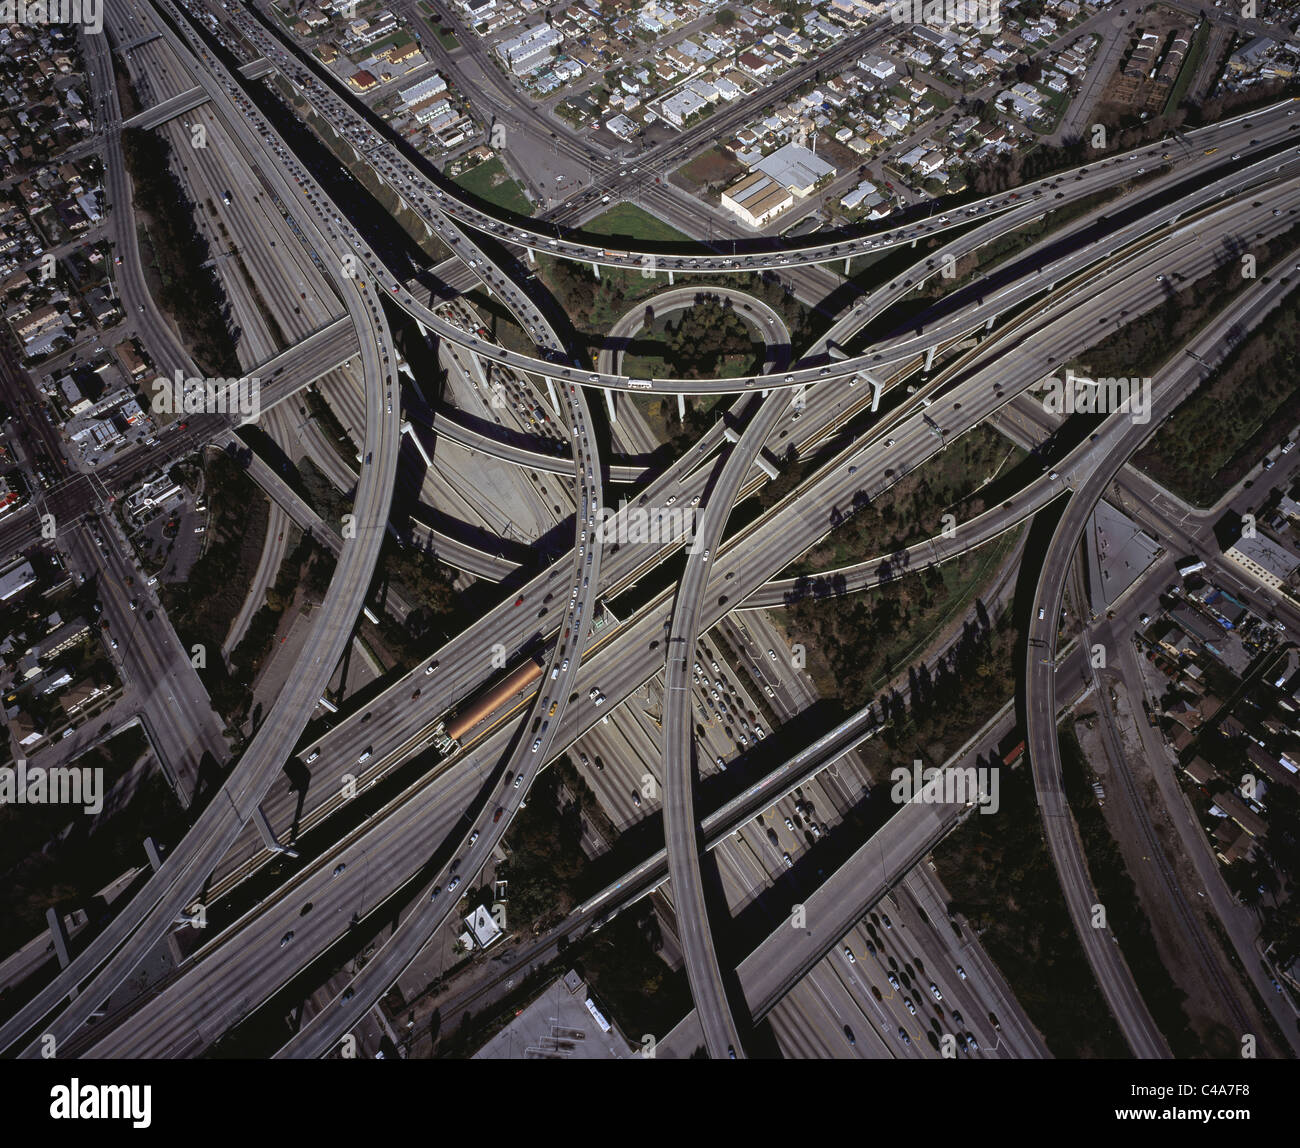 105 & 110 FREEWAY INTERCHANGE (aerial view). Los Angeles, California, USA. - Stock Image